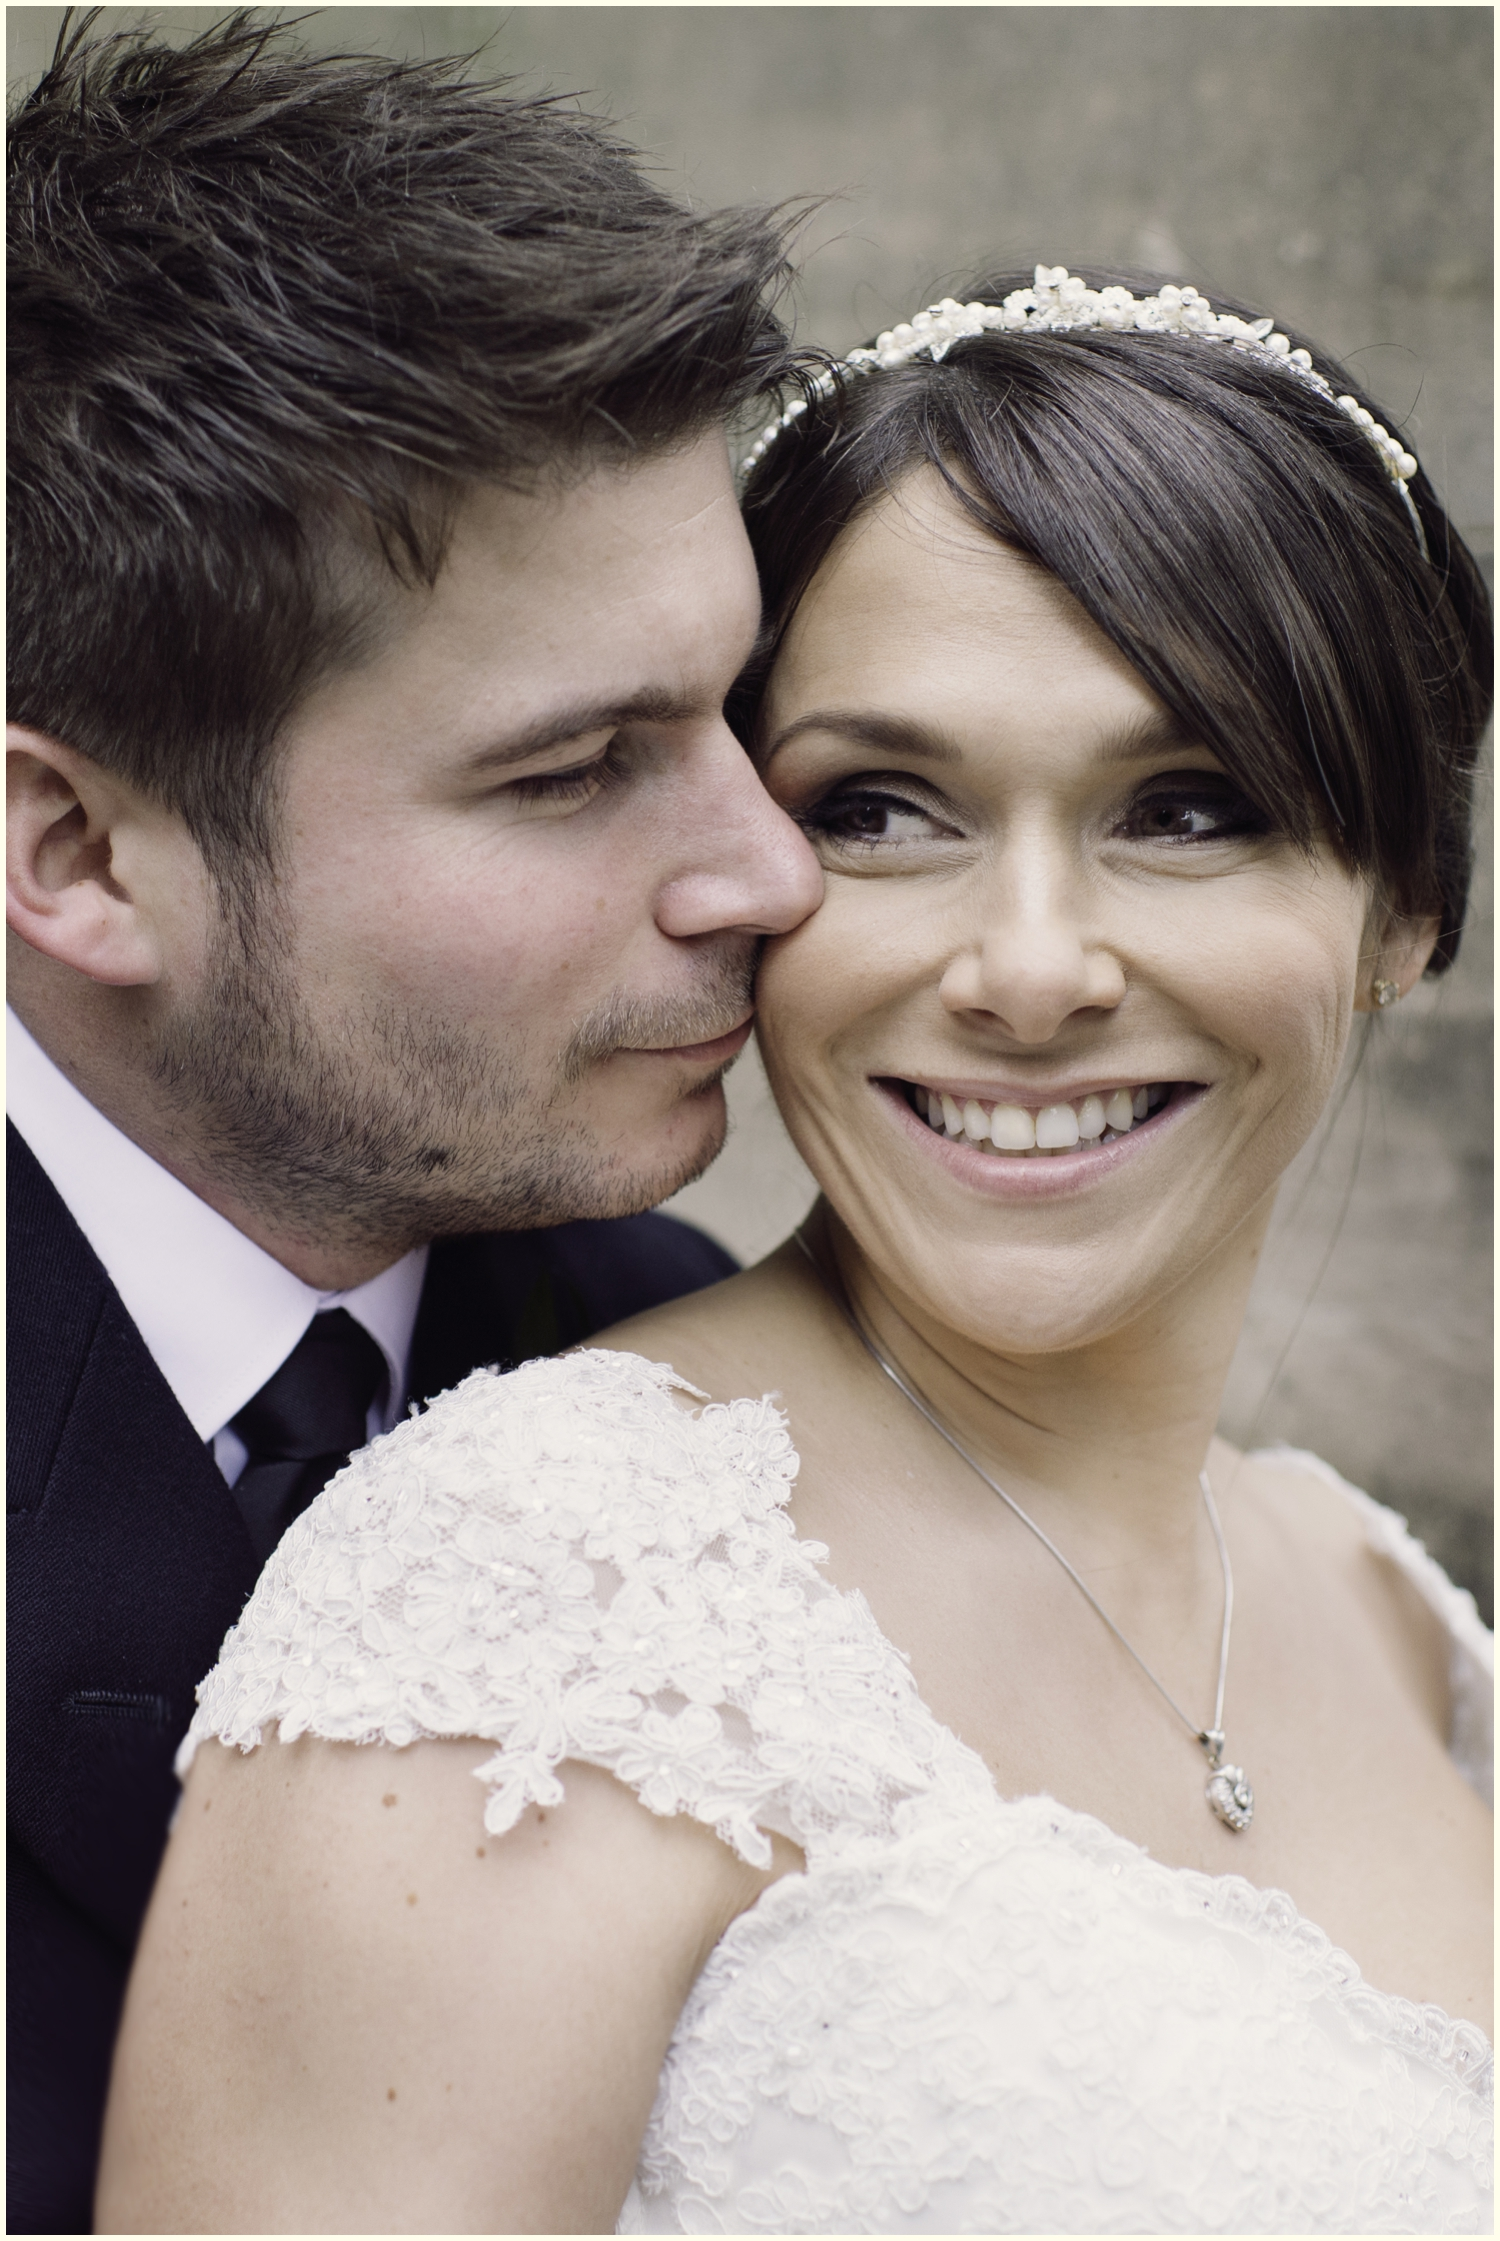 Nikki_Cooper_Photography_Rich&Sarah_Wedding_Photos_Crown_and_Sandys_Ombersley_Worcester_1029.jpg